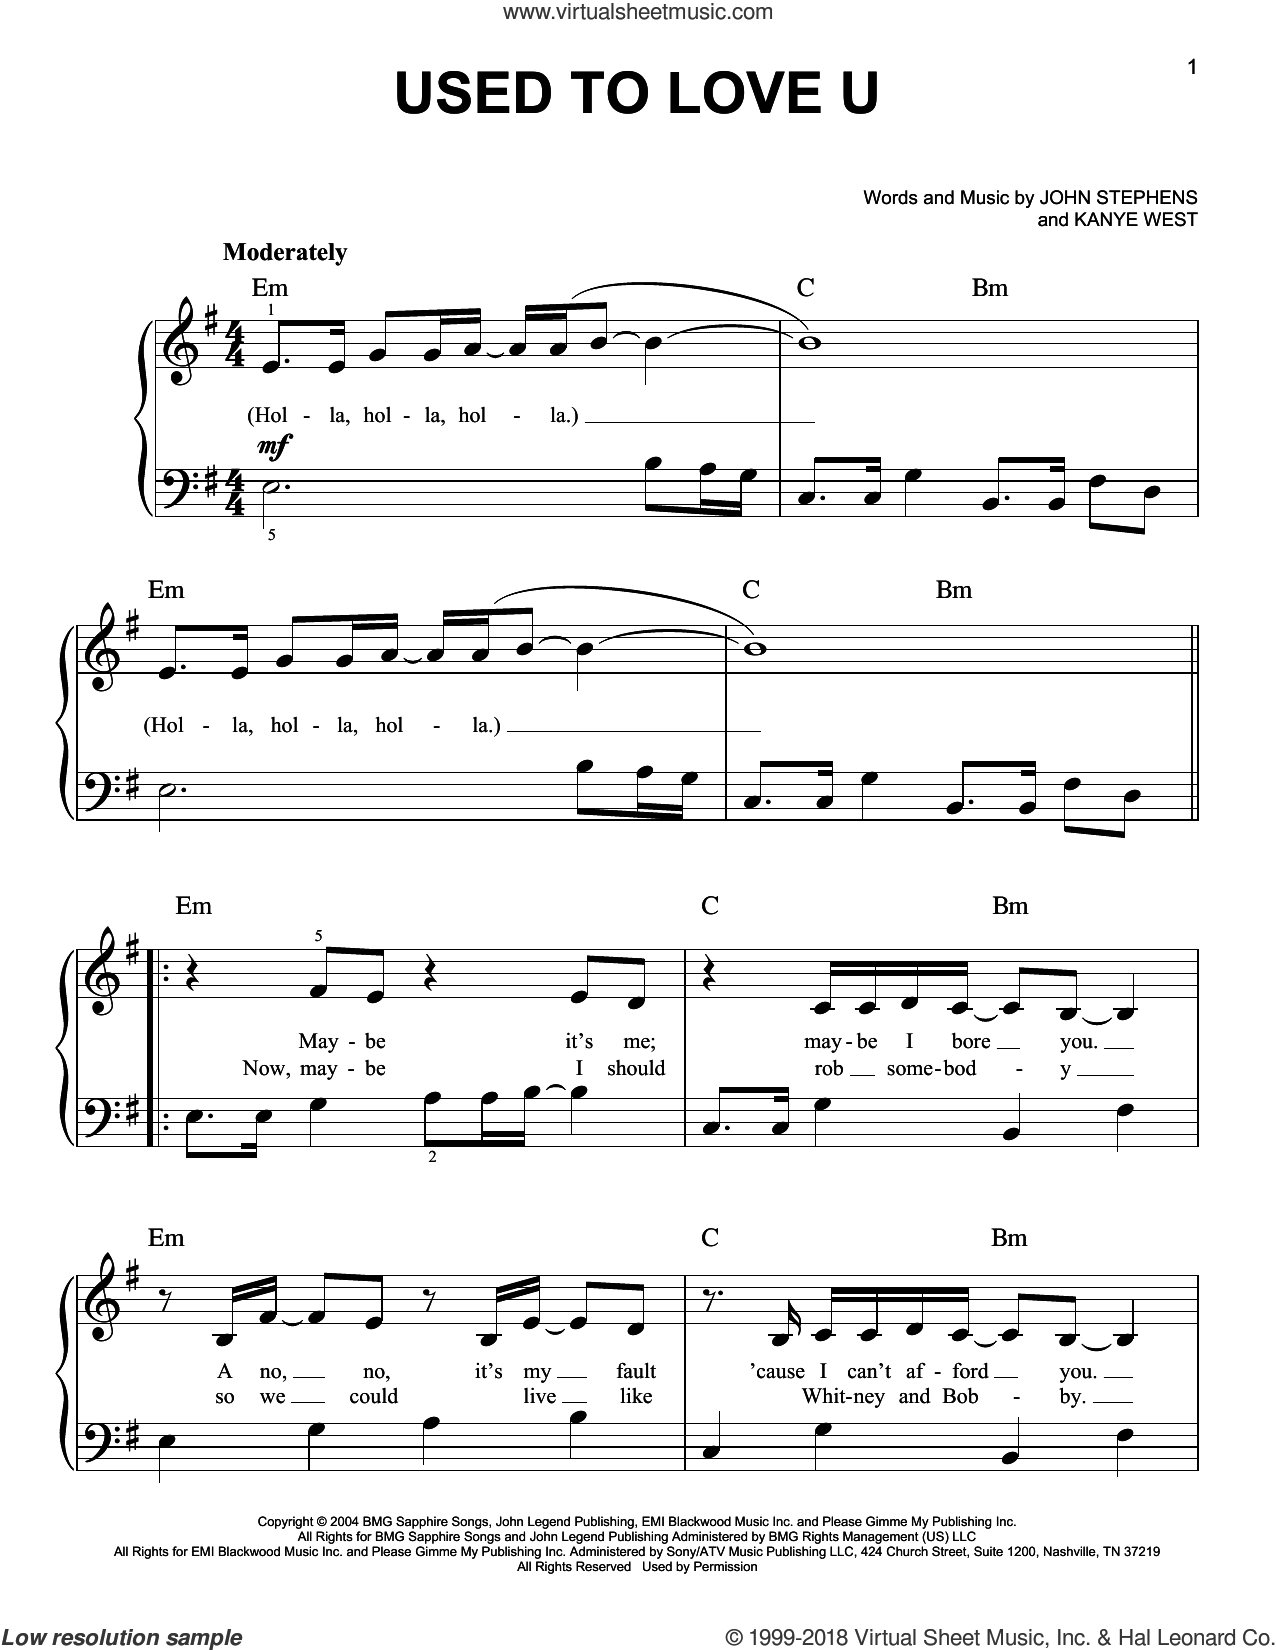 Used To Love U sheet music for piano solo by John Legend, John Stephens and Kanye West, easy skill level